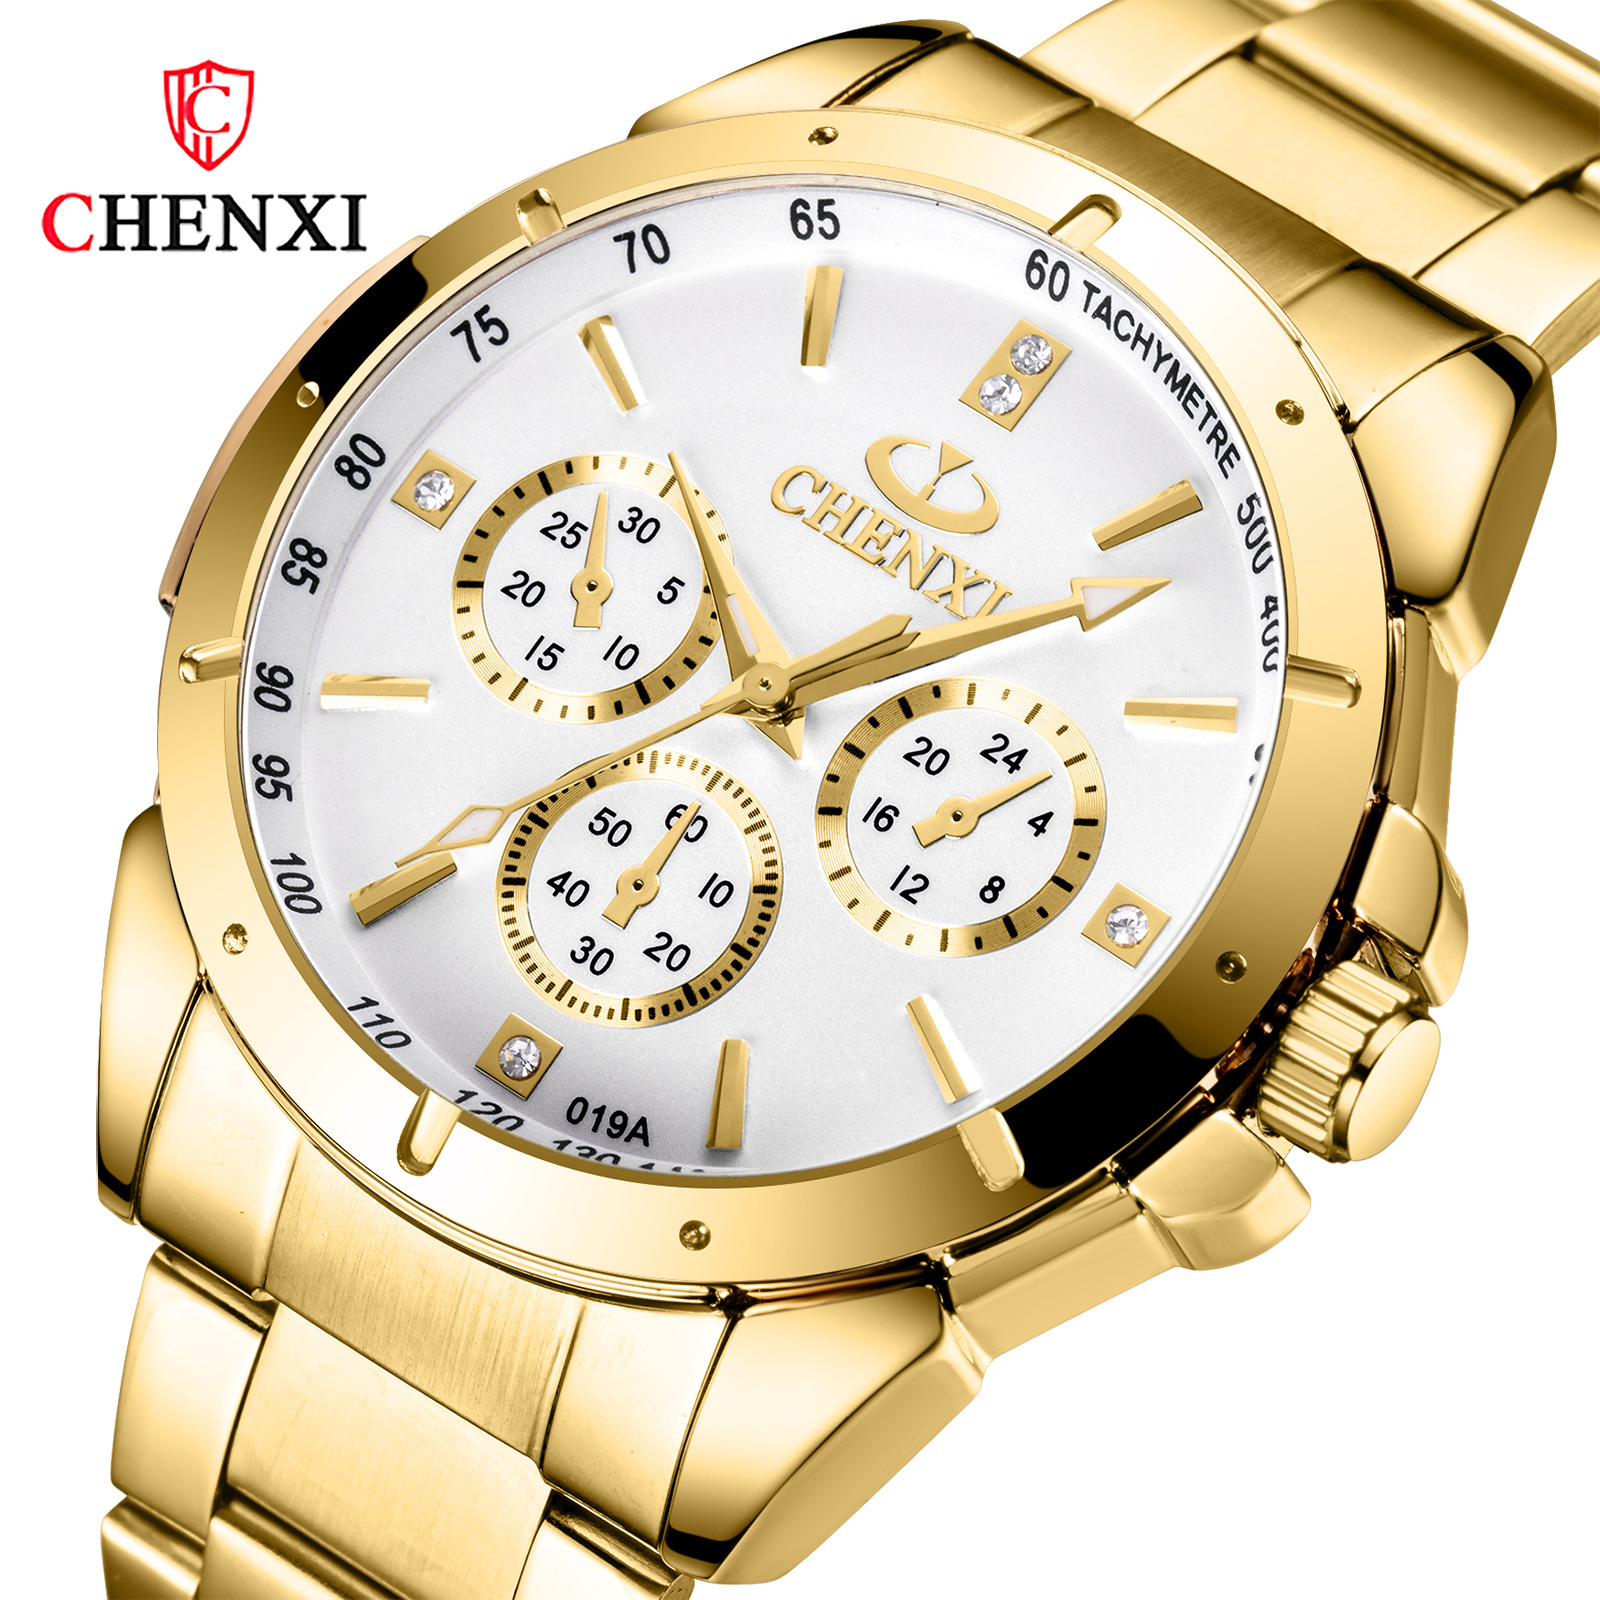 2019 CHENXI Top Brand Men Women Luxury Golden Quartz Couple Wristwatch Waterproof Full Stainless Steel Clock Mens Ladies Watches